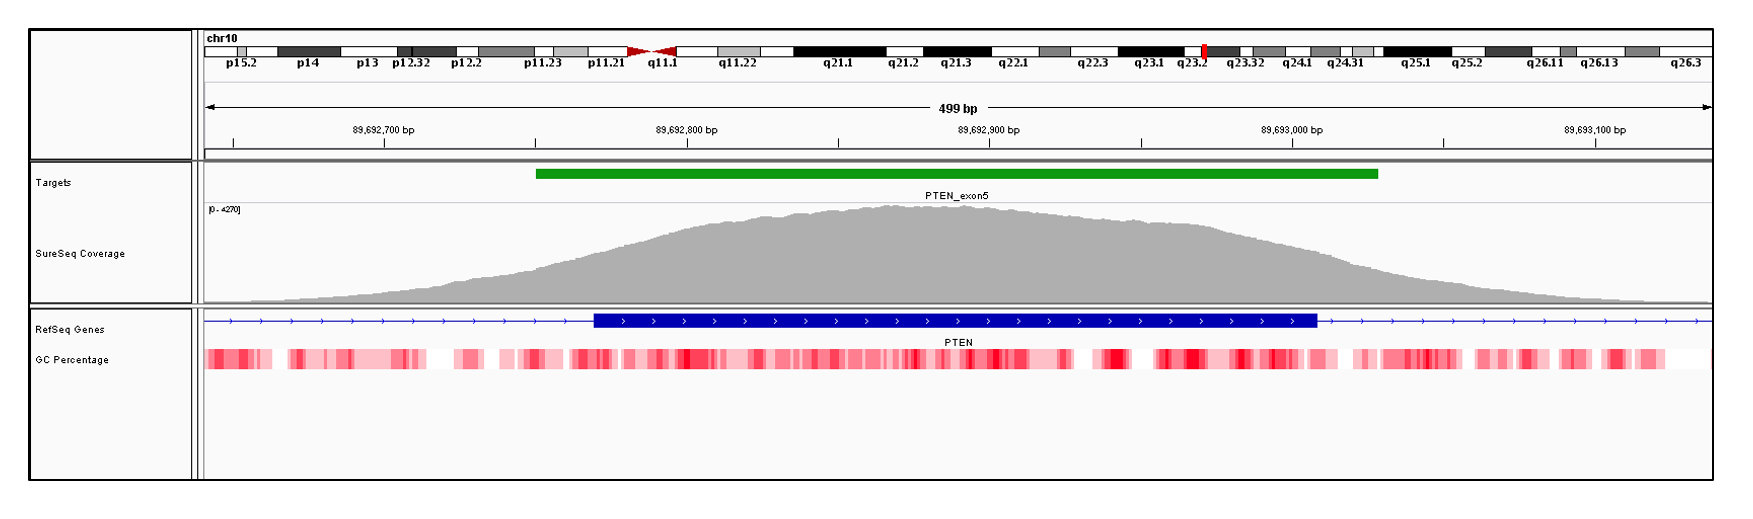 PTEN Exon 5 (hg19 chr10:89692770-89693008). Depth of coverage per base (grey). Targeted region (green). Gene coding region as defined by RefSeq (blue). GC percentage (red). Image